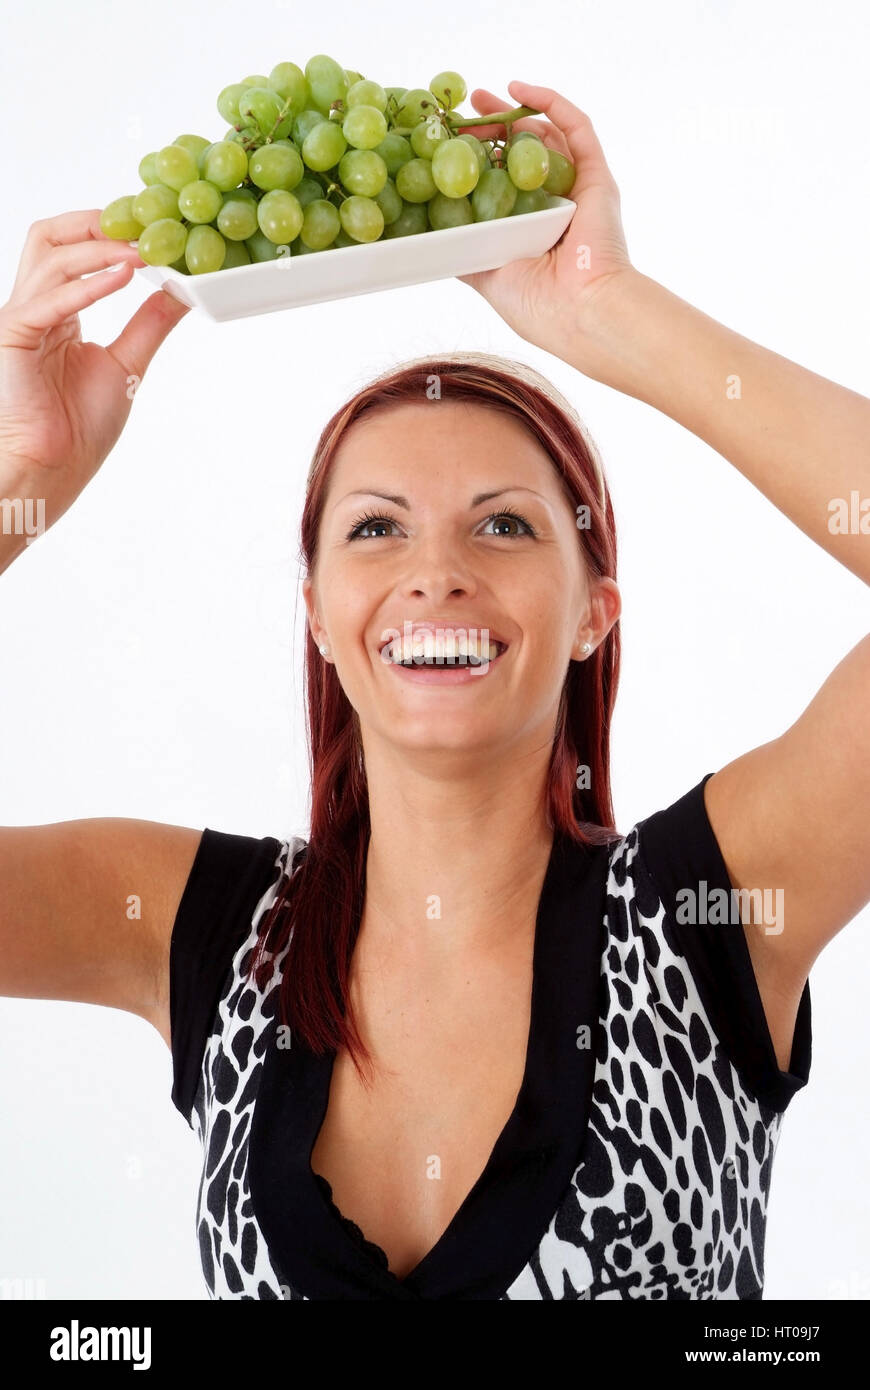 Junge Frau mit Weintrauben - young woman with grapes - Stock Image